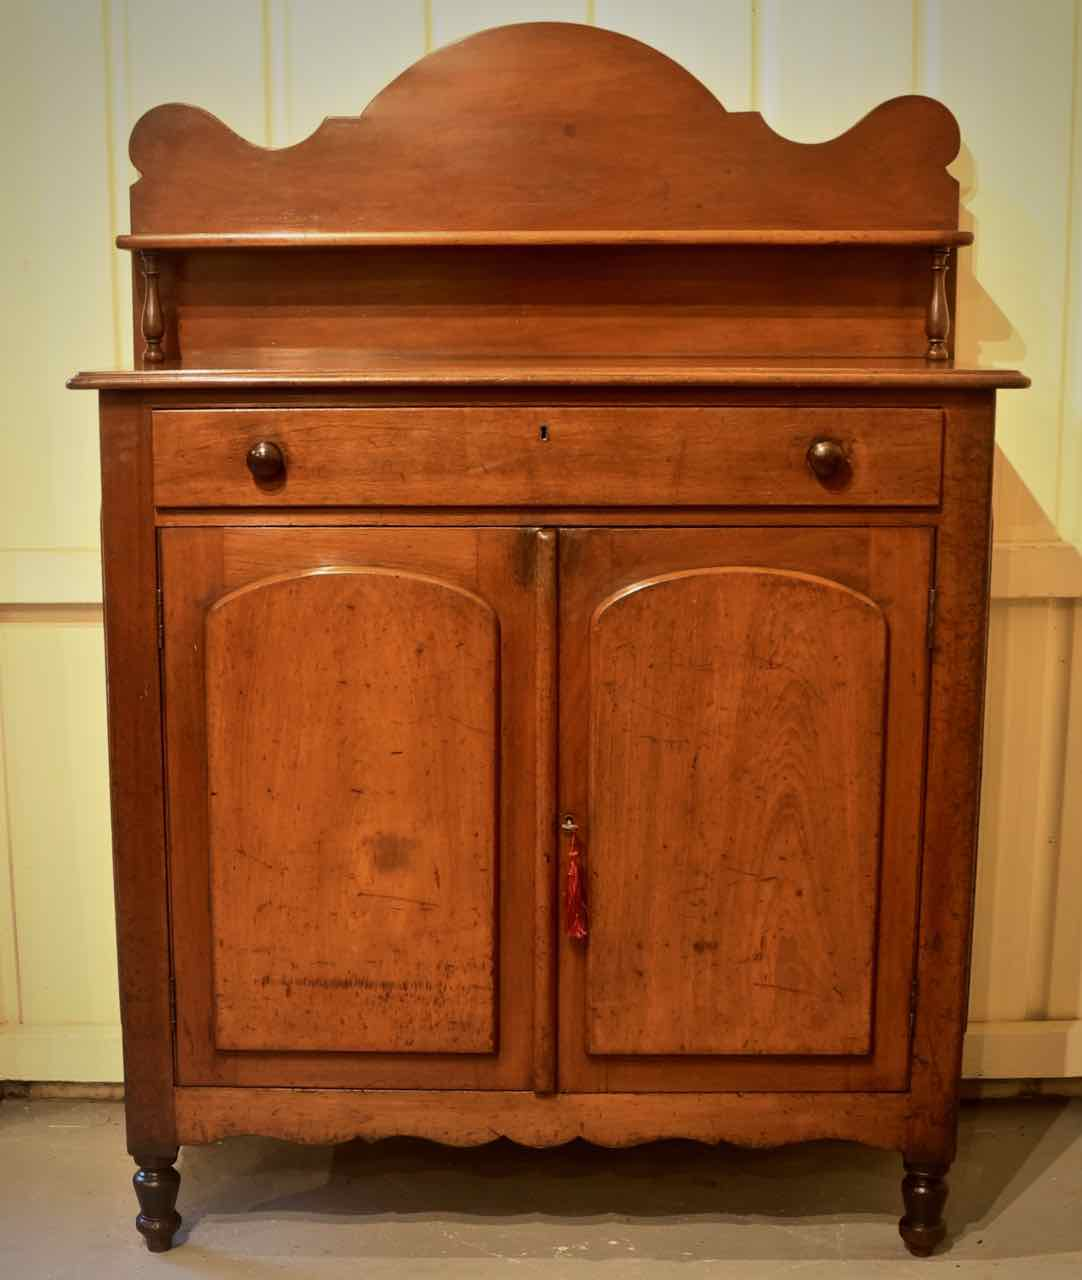 Kitchen Furniture Australia: Antique Australian Cedar Country Kitchen Chiffonier